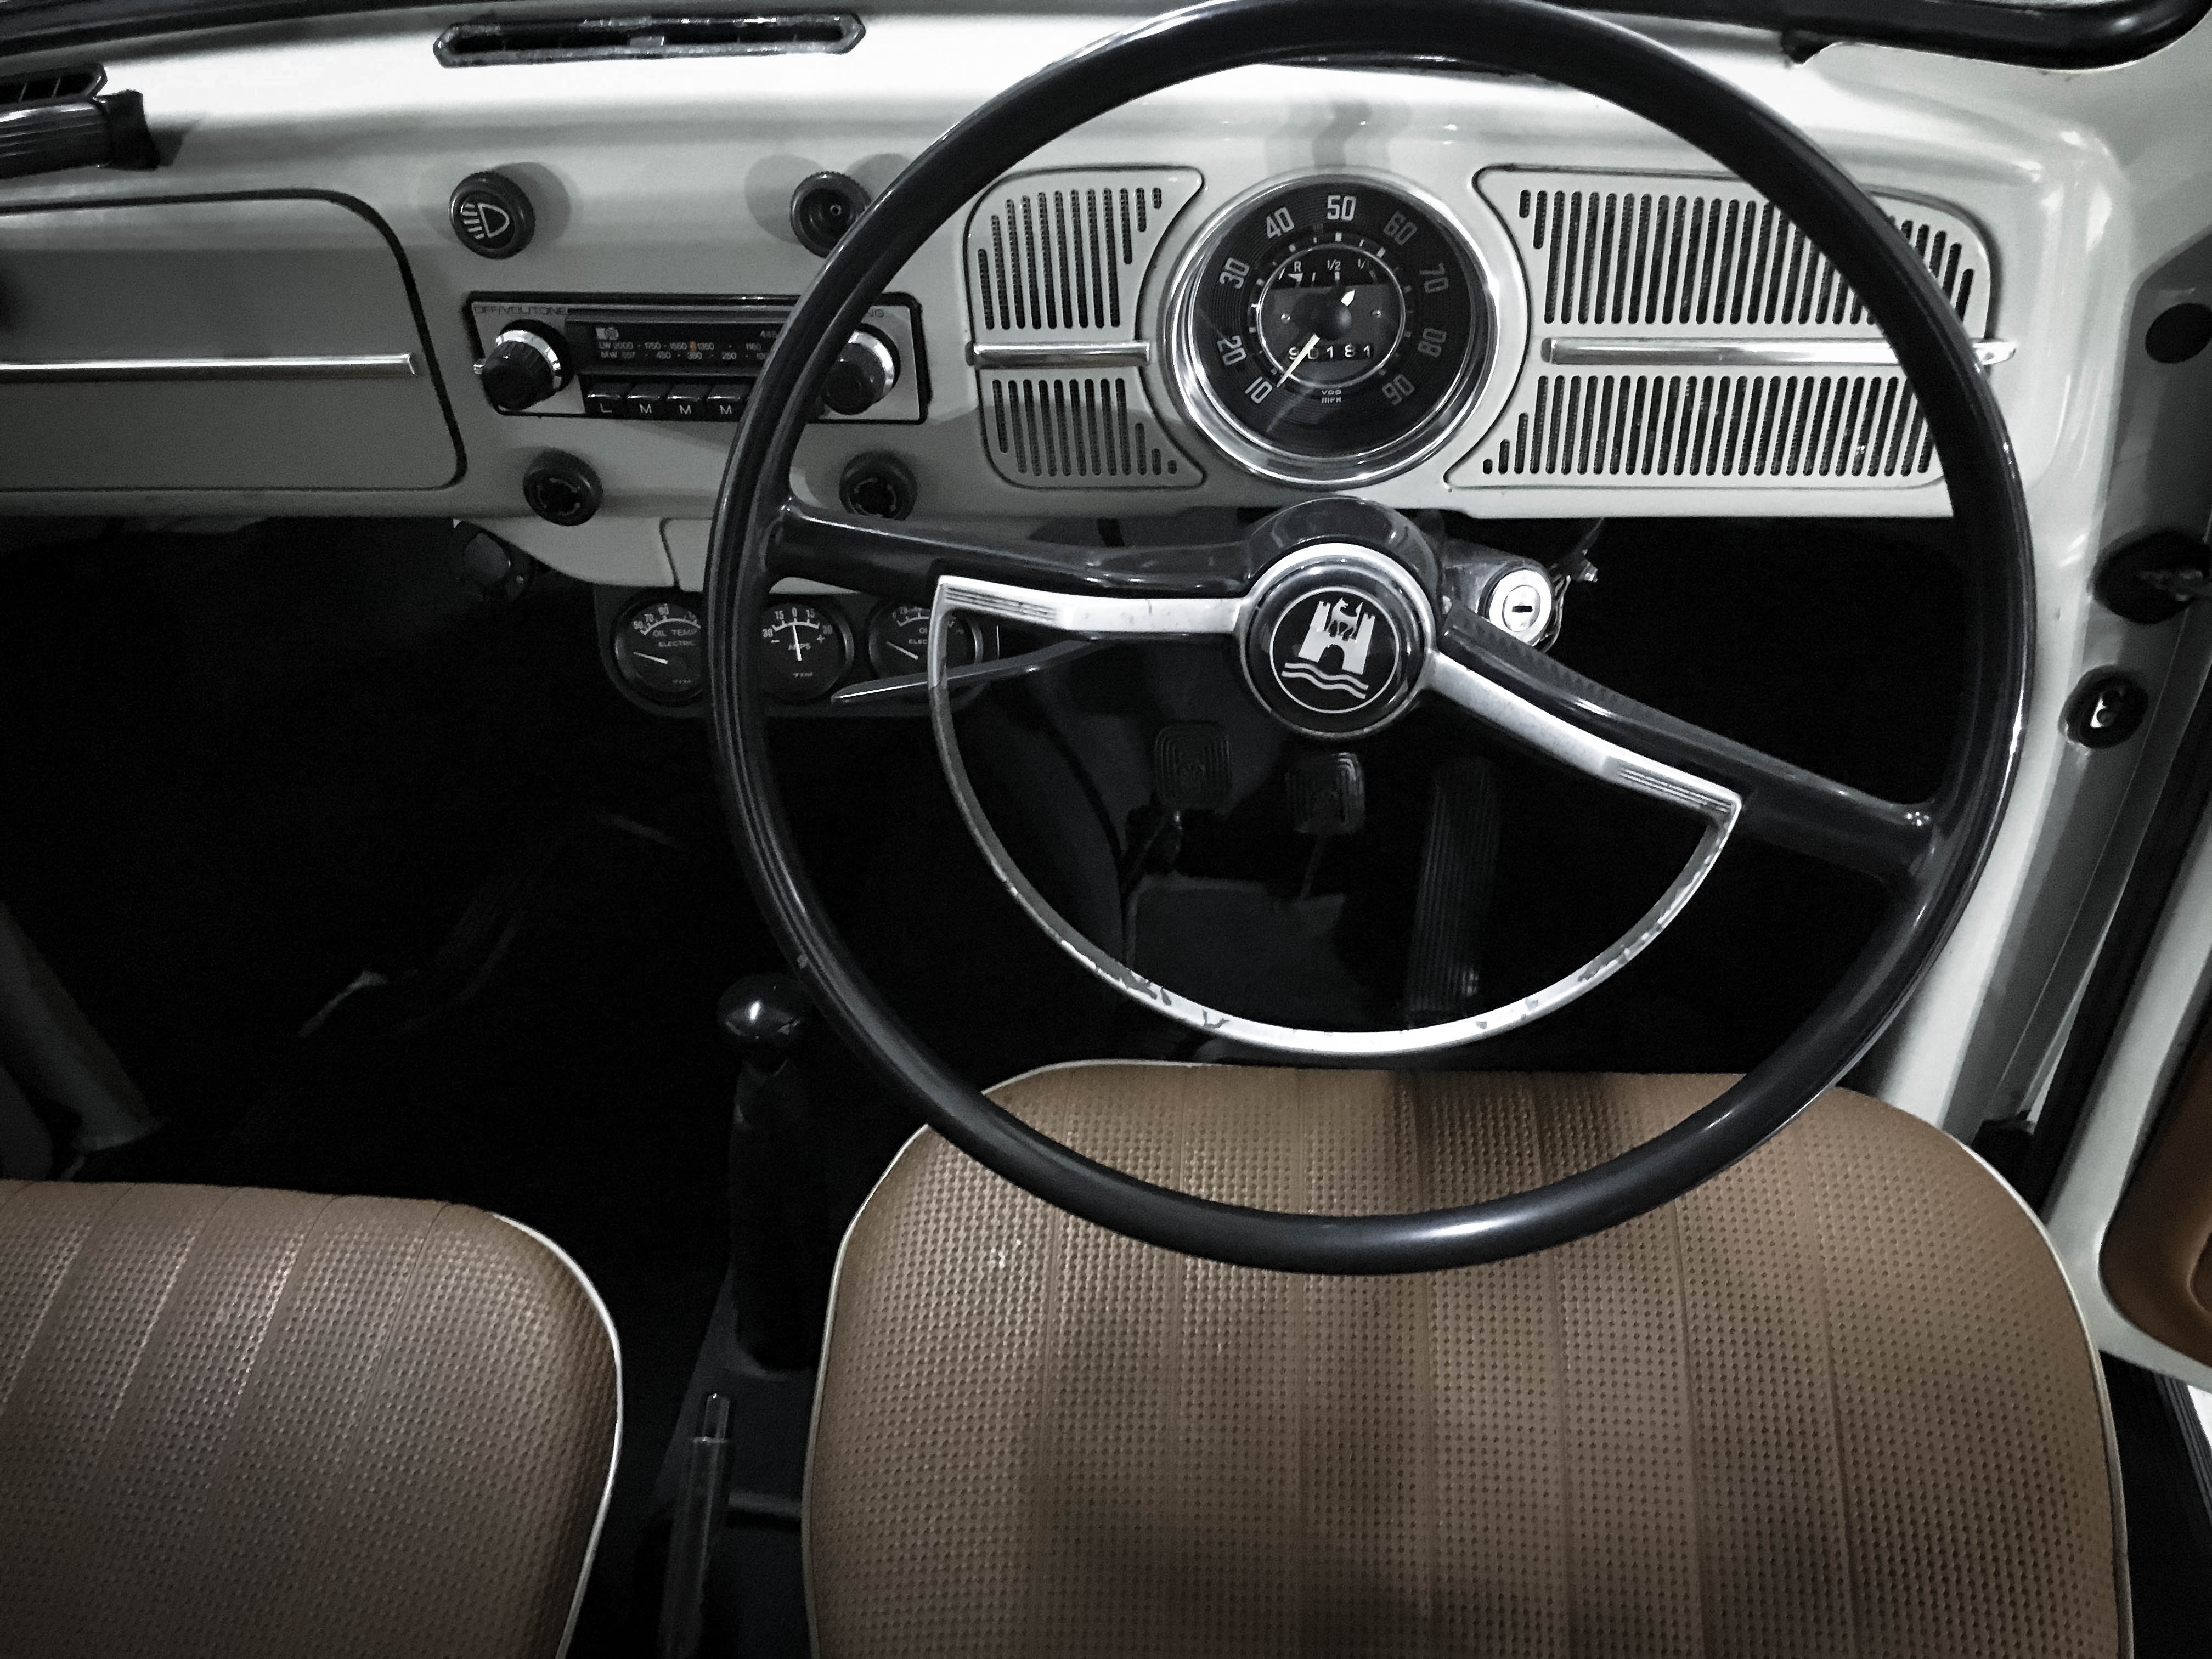 VW-Beetle-interior